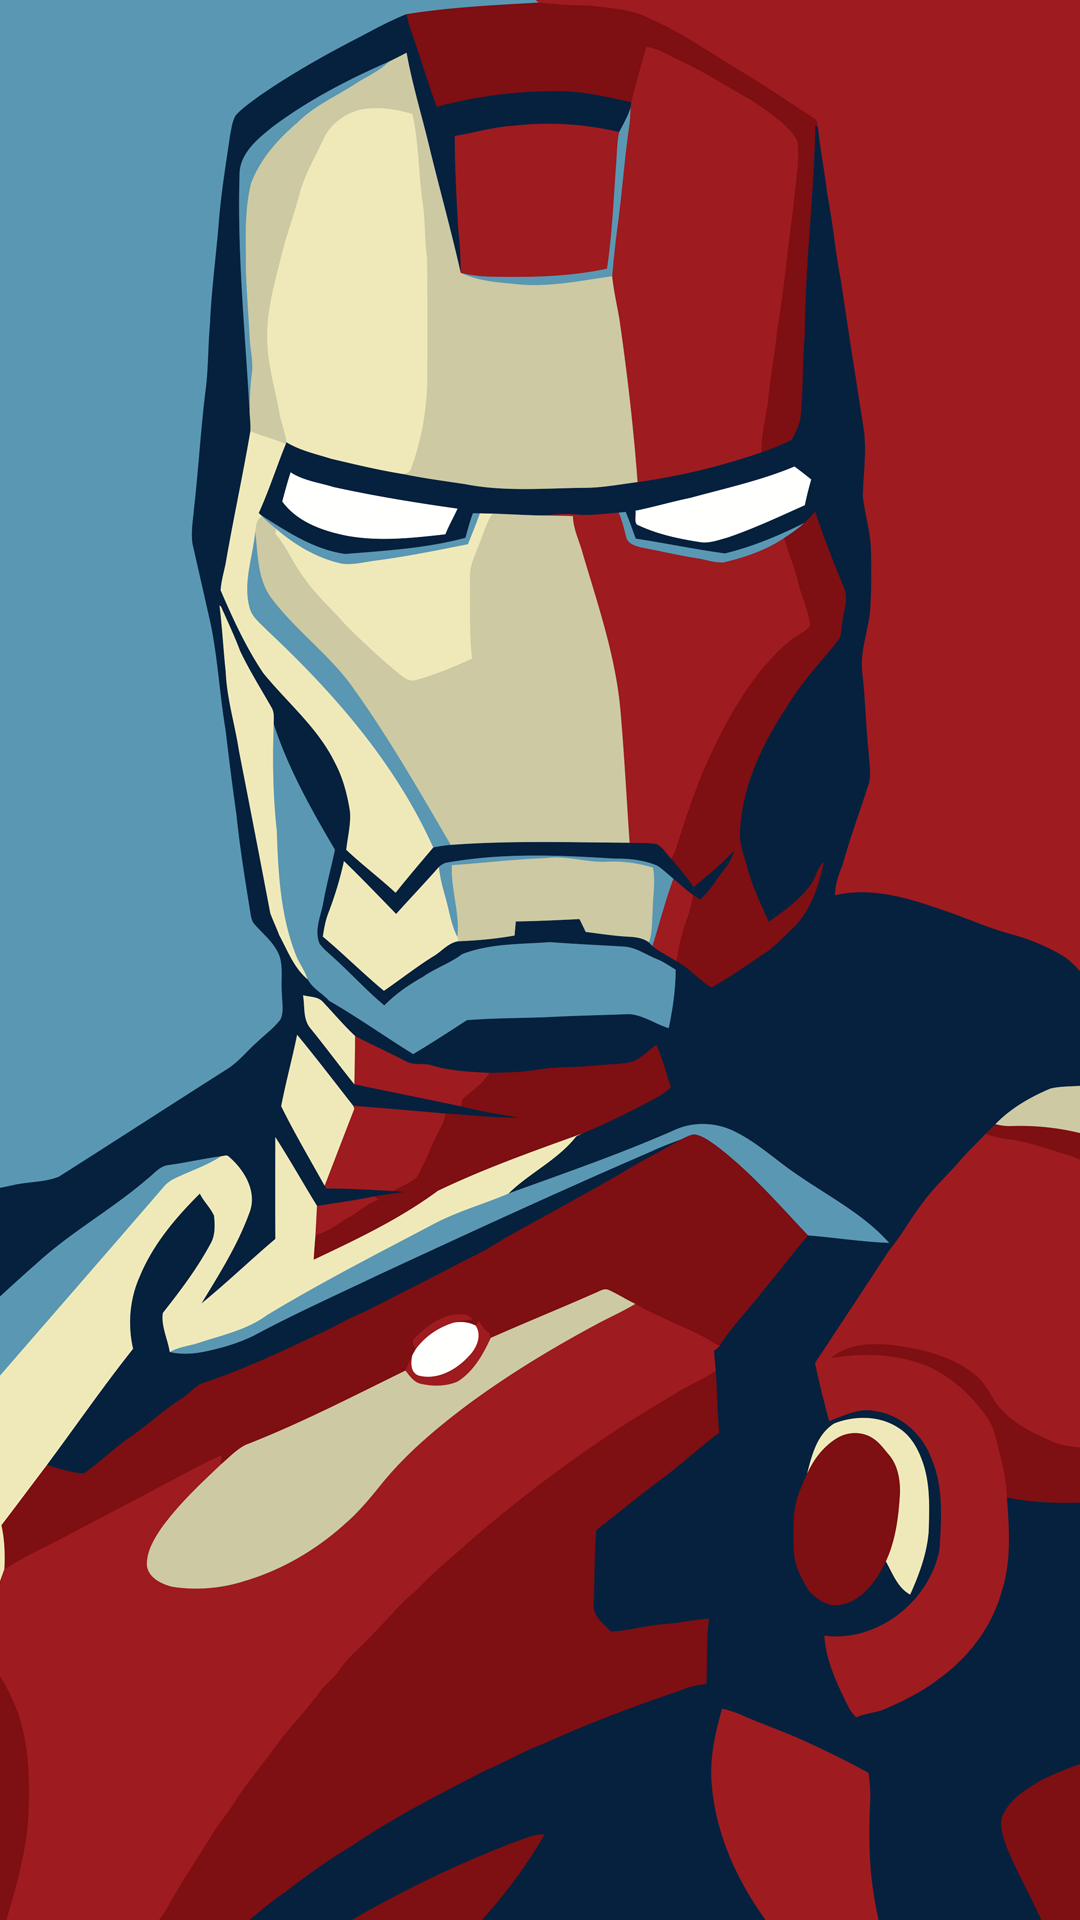 ironman wallpapers and backgrounds ilustrated ironman oneplus 3 download 2